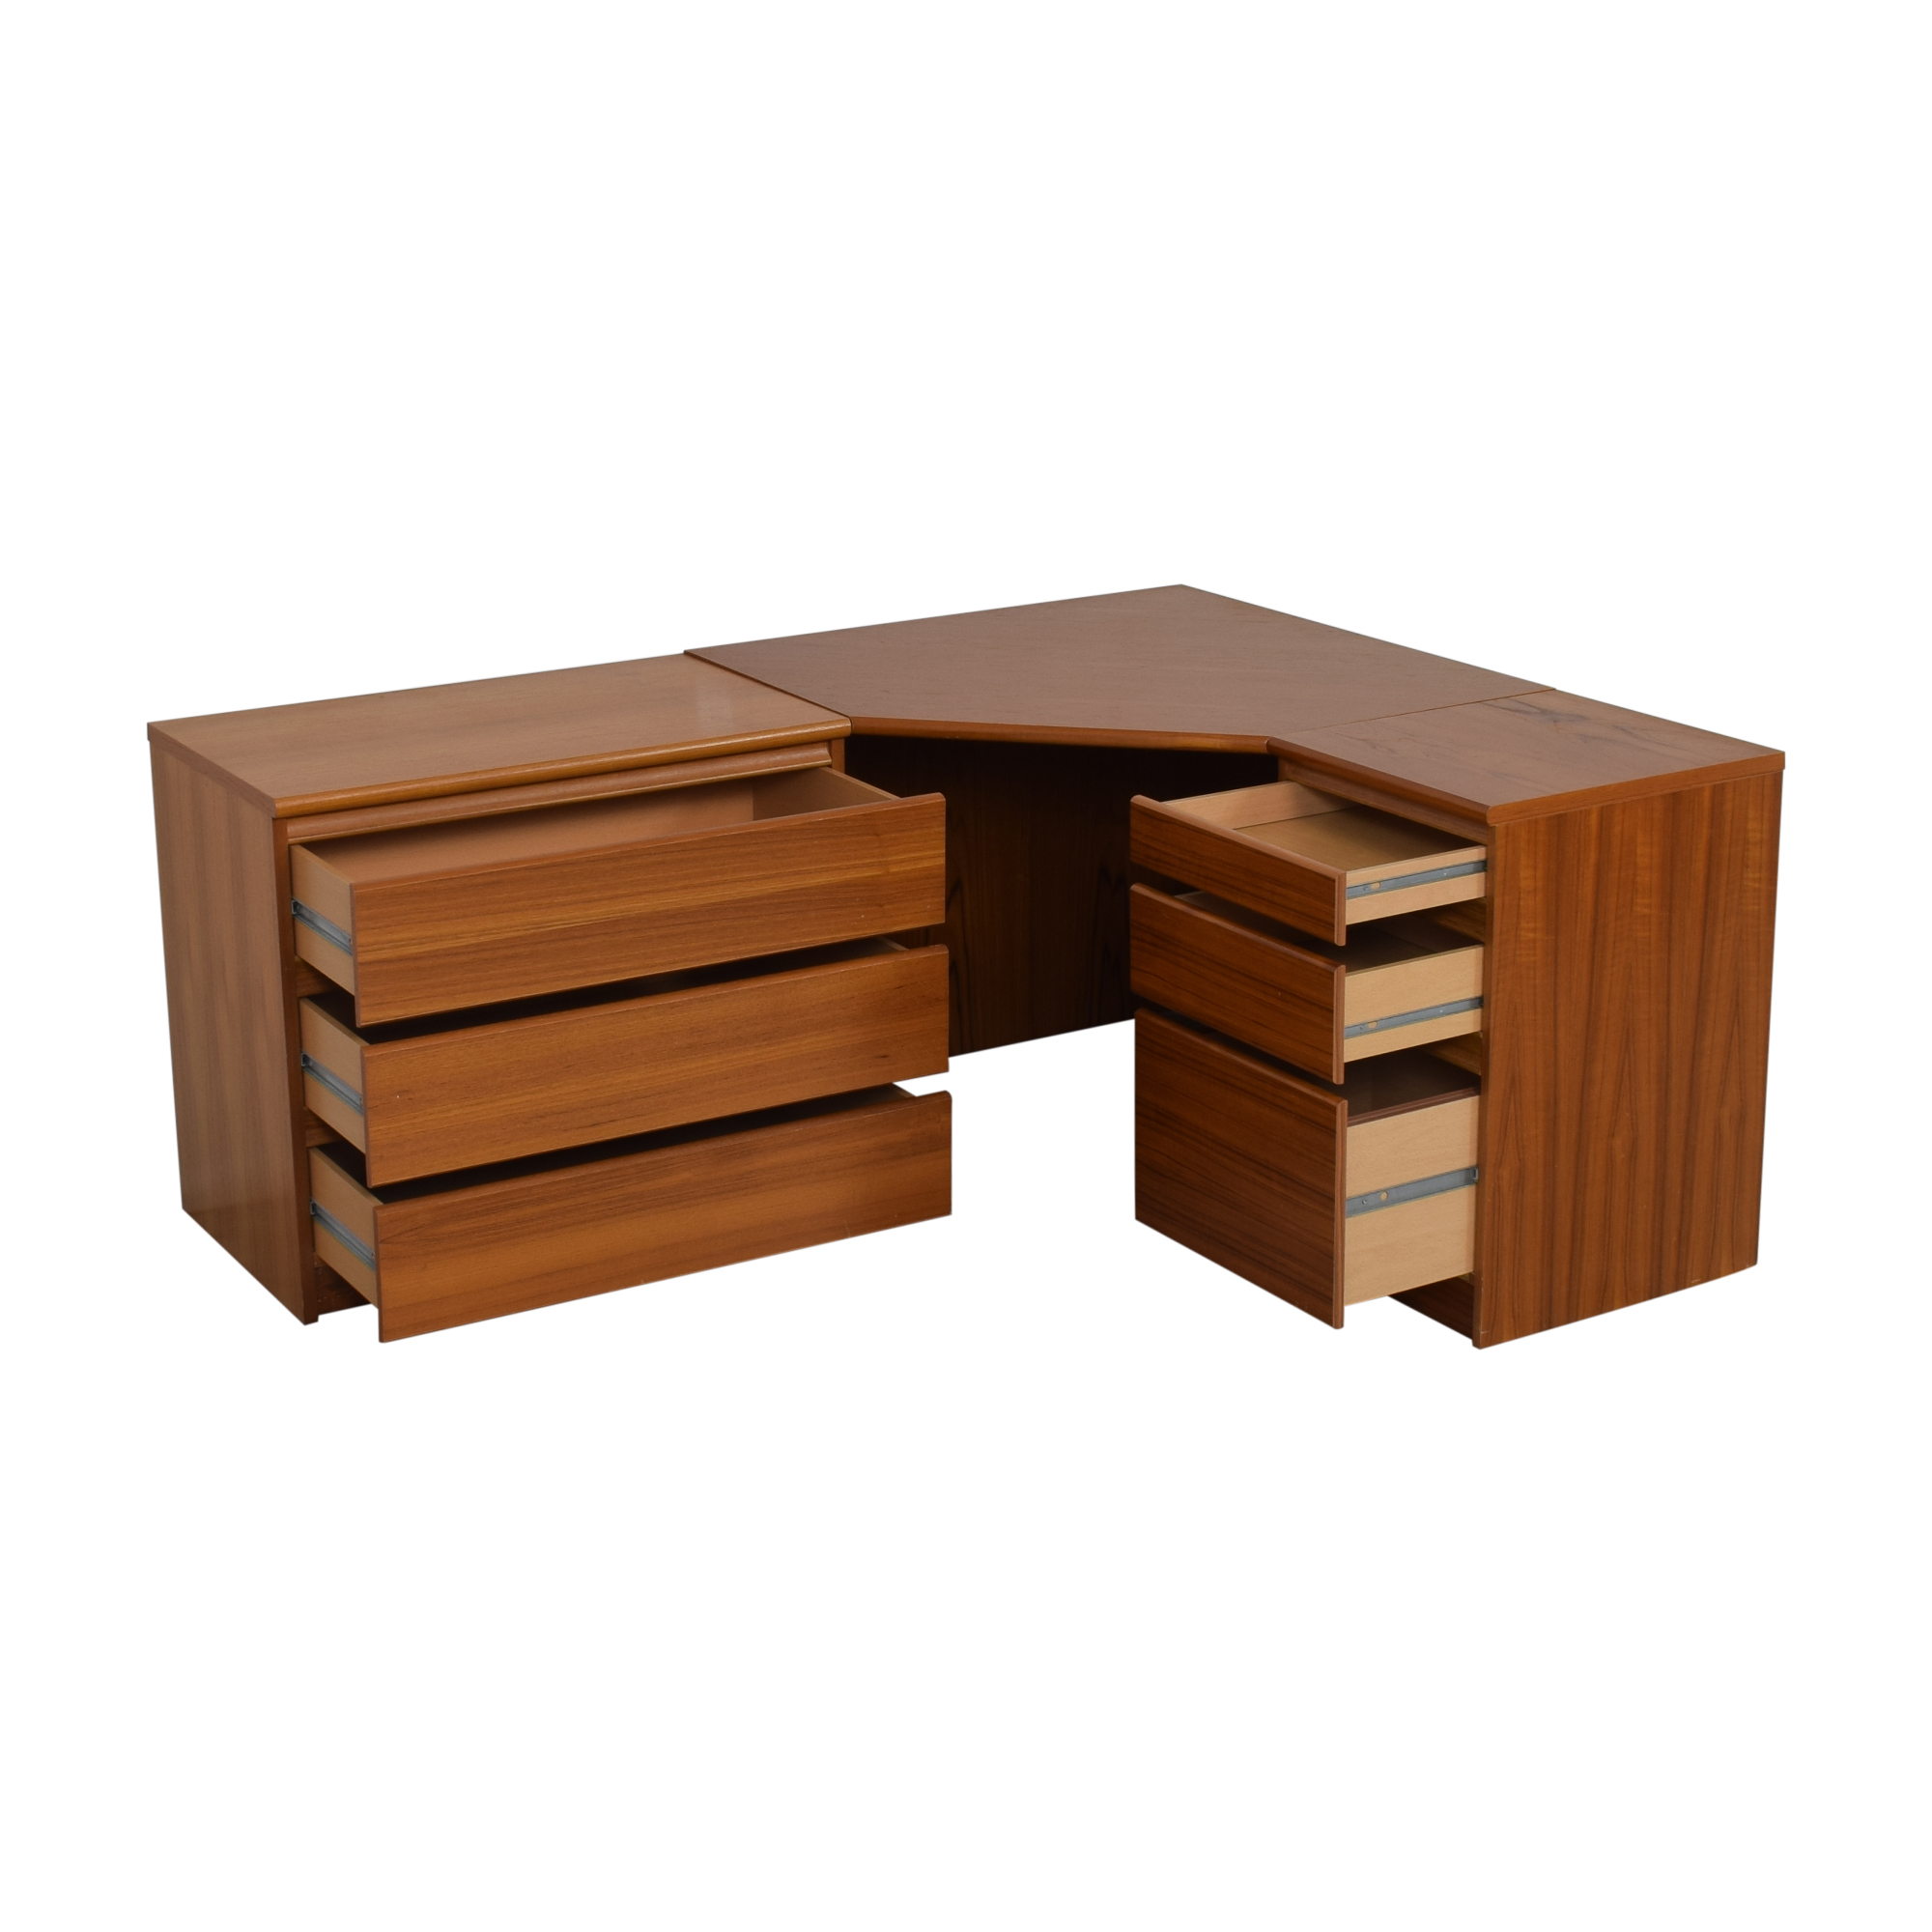 Scandinavian Designs Corner Desk with Storage Cabinet / Home Office Desks